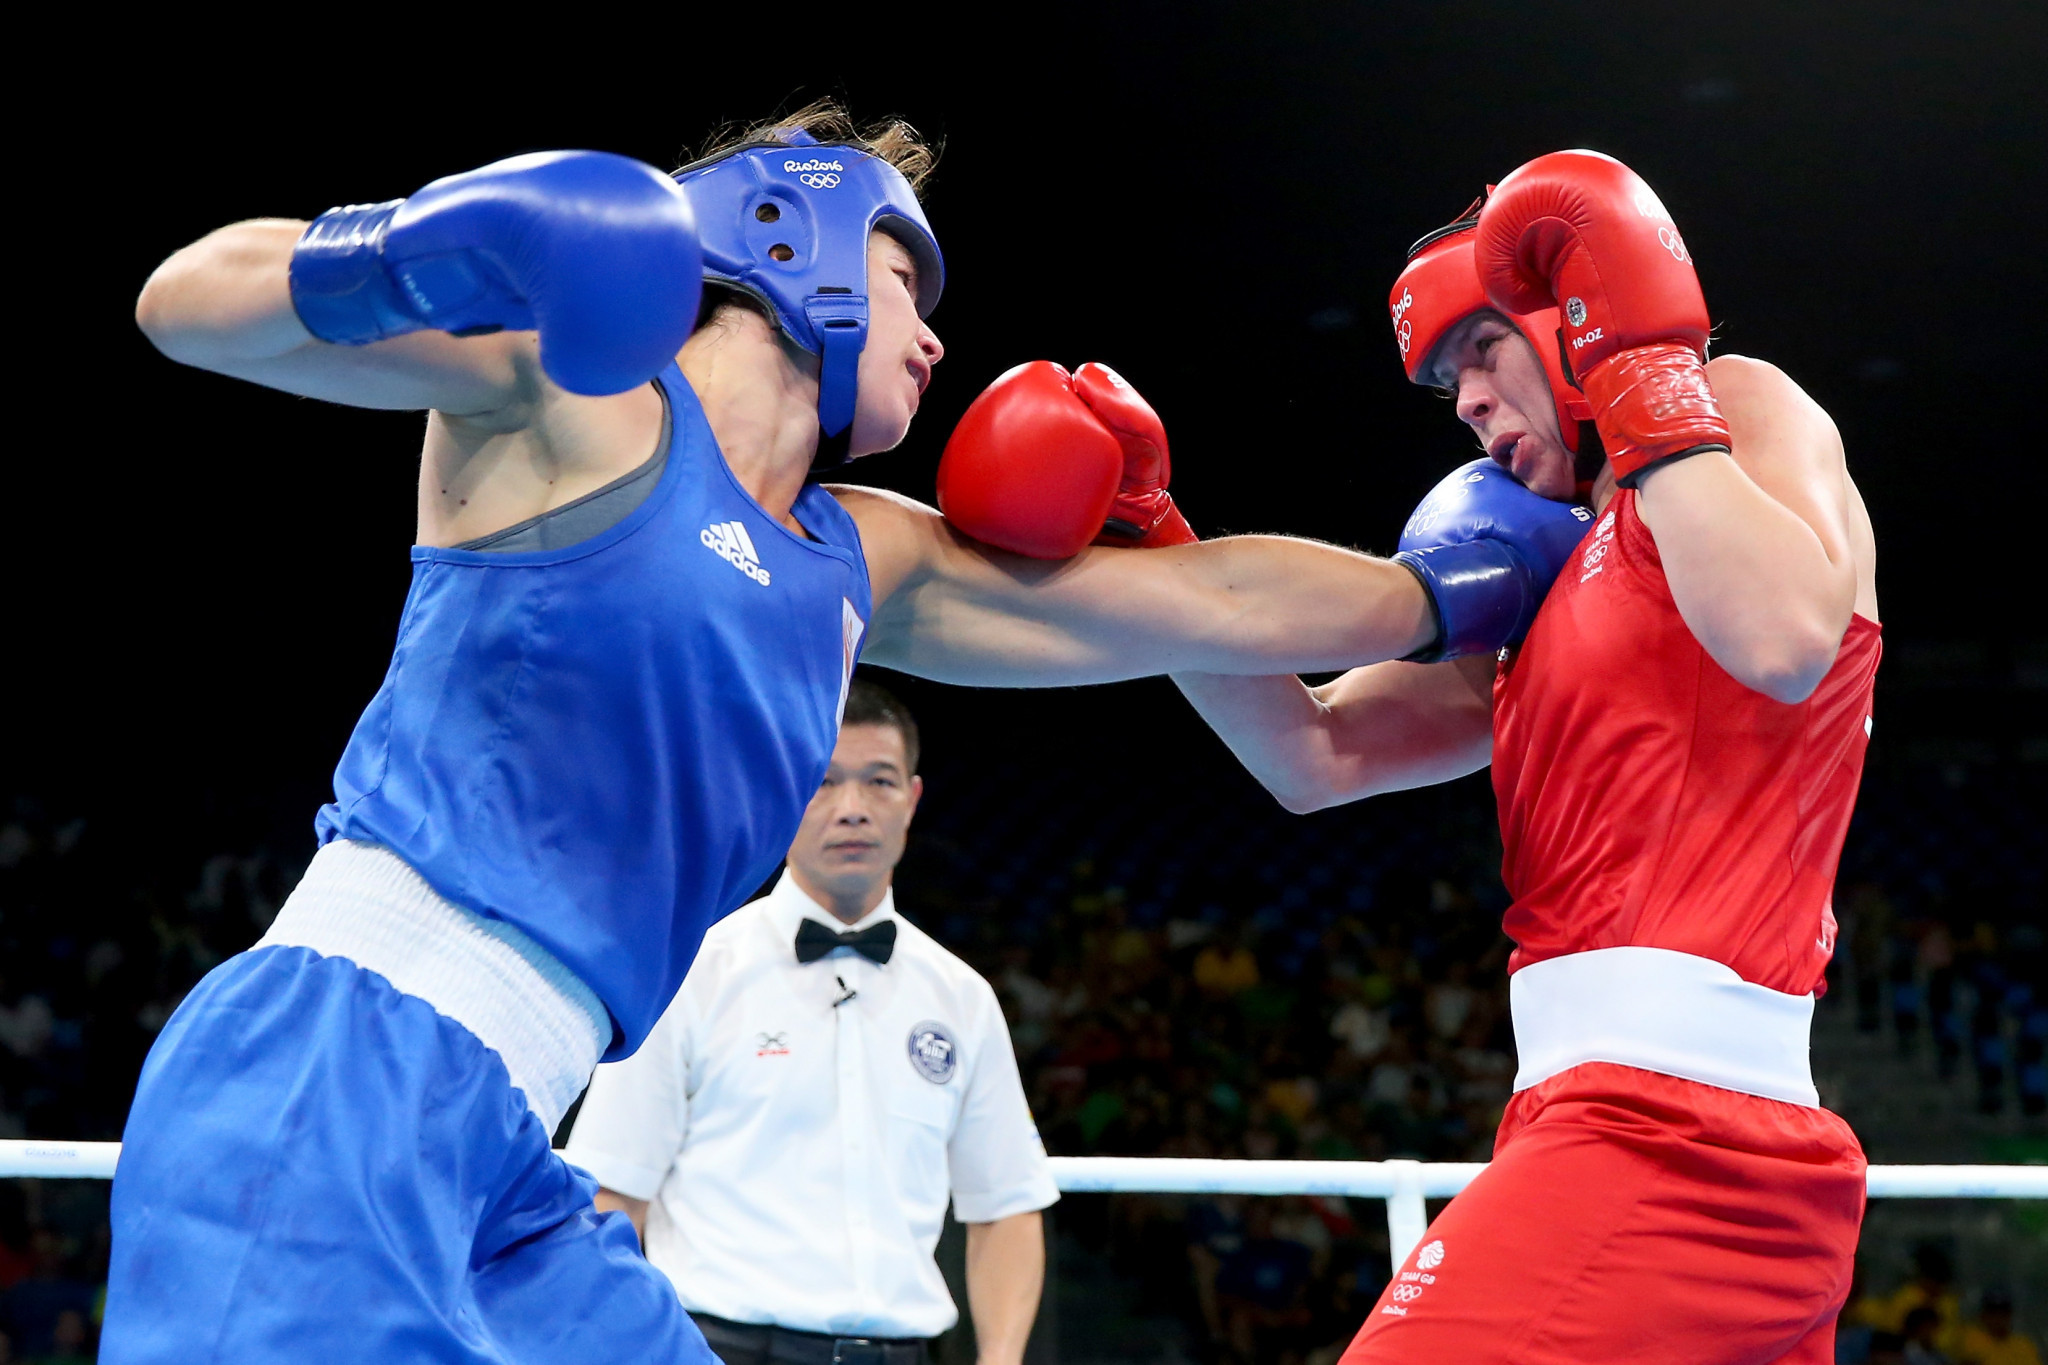 A new federation could feasibly be established to run the Olympic boxing competition at Tokyo 2020 ©Getty Images